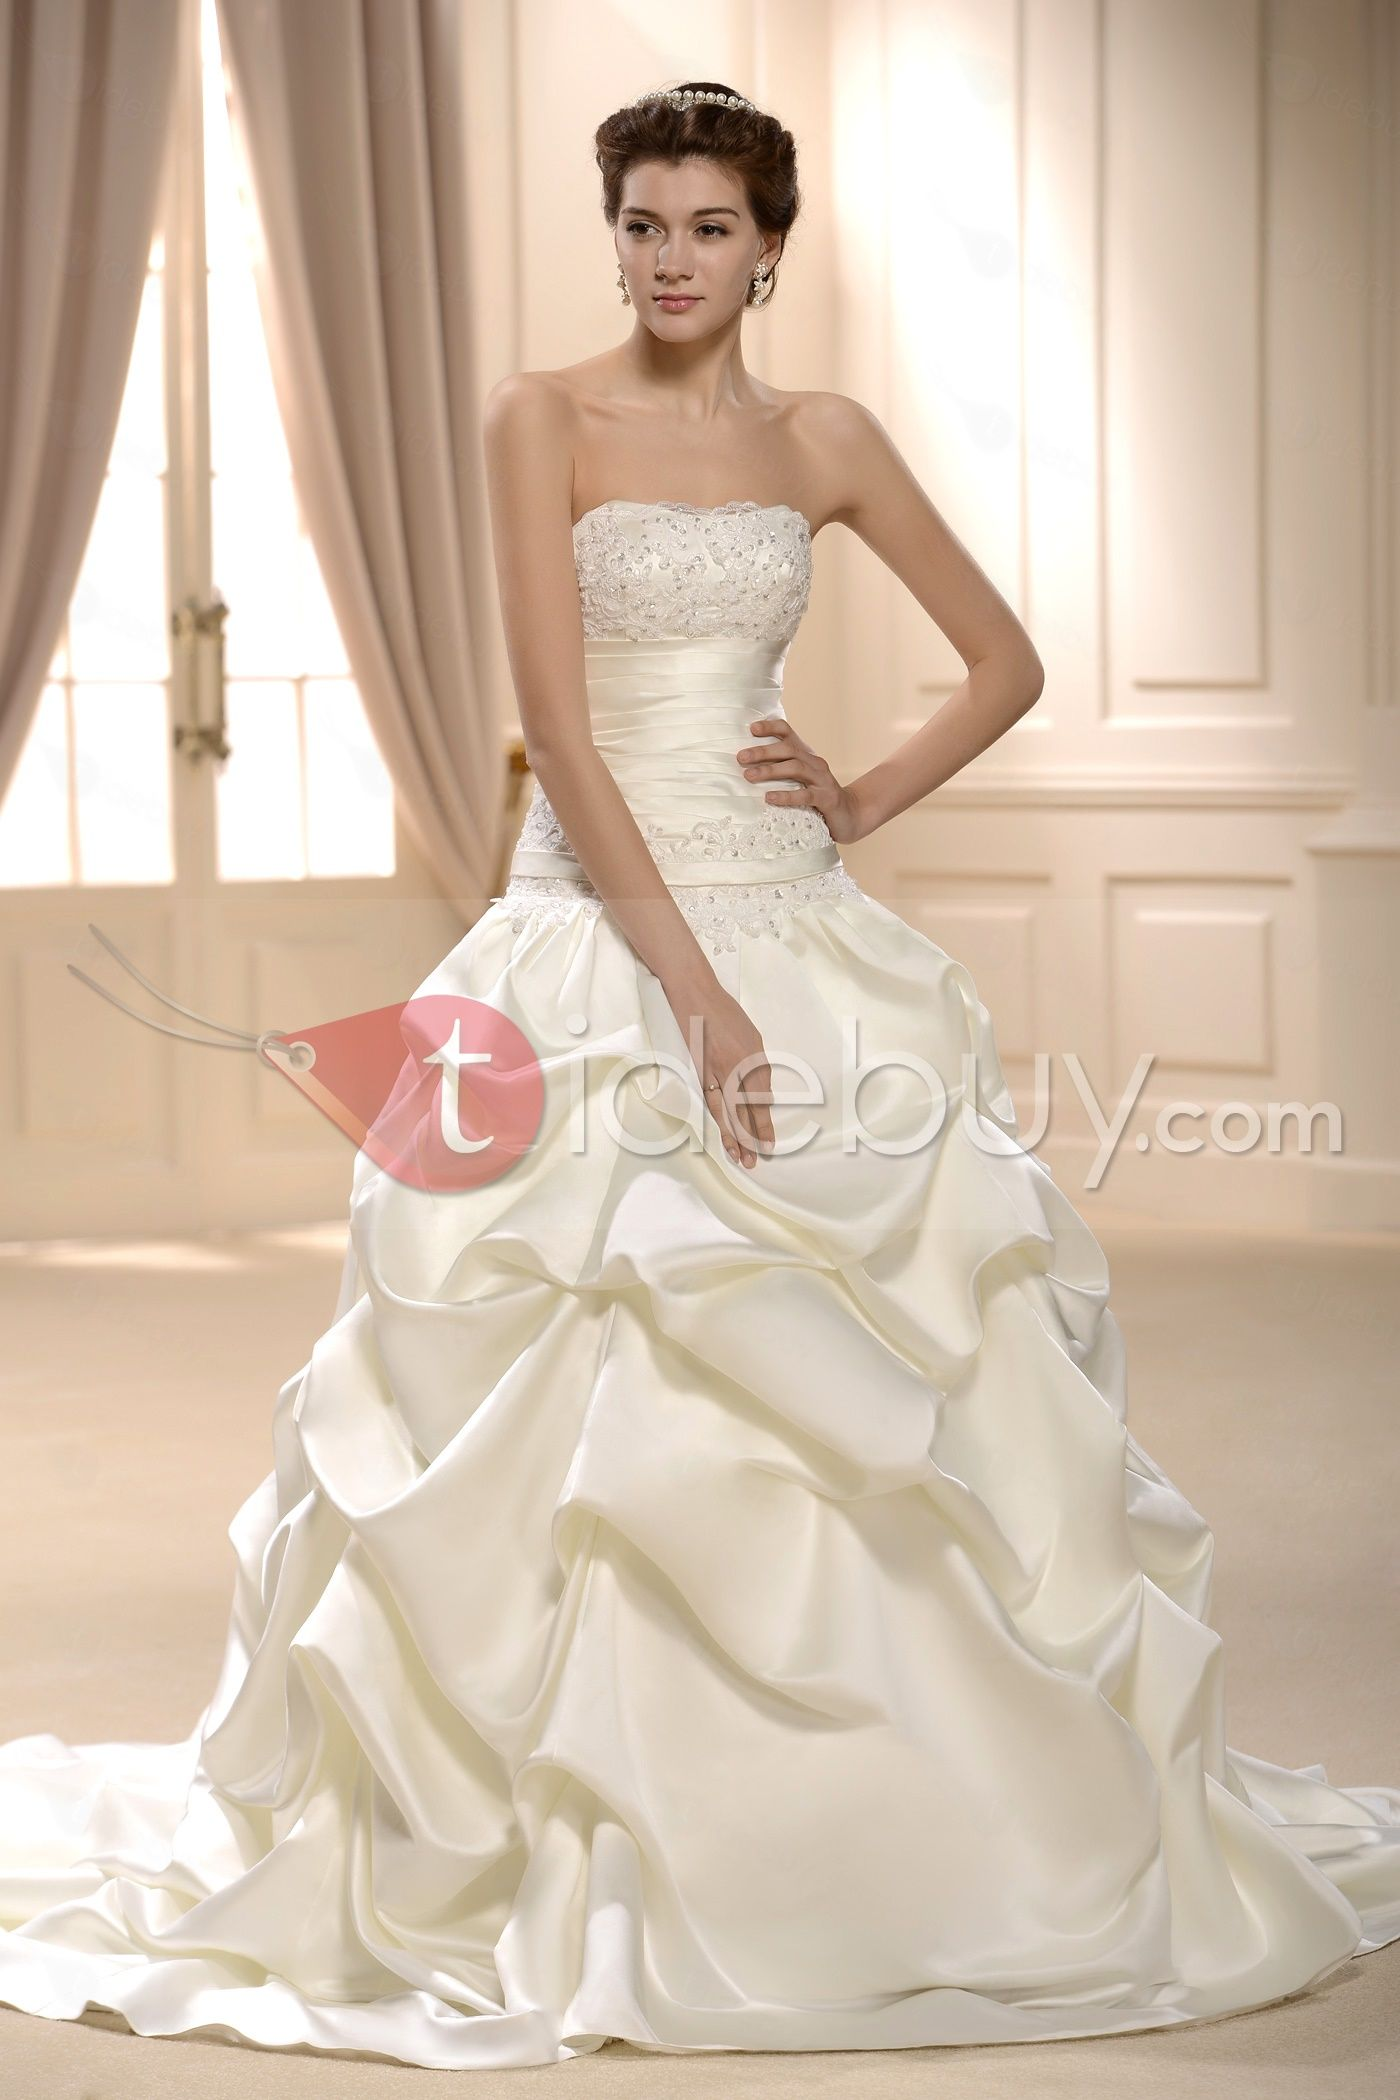 Princess Ball Gown Floor-Length Strapless Wedding Dress : Tidebuy ...